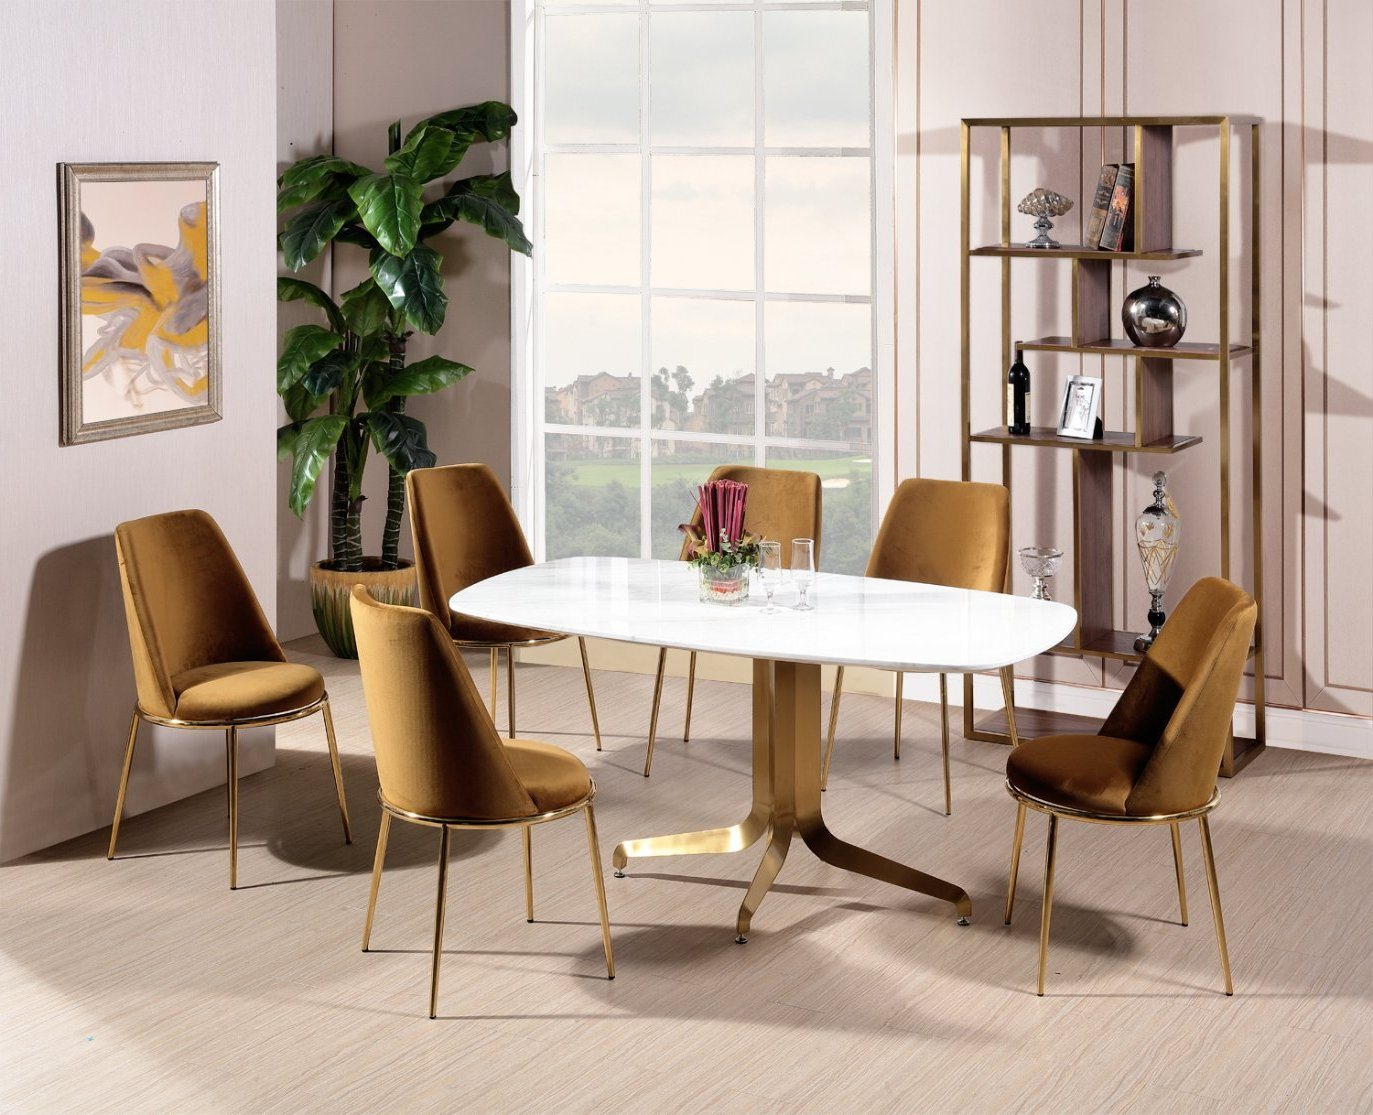 China Design Guild Velvet Dining Chair Furniture With Brass Legs Gold China Dining Chair Metal Chair